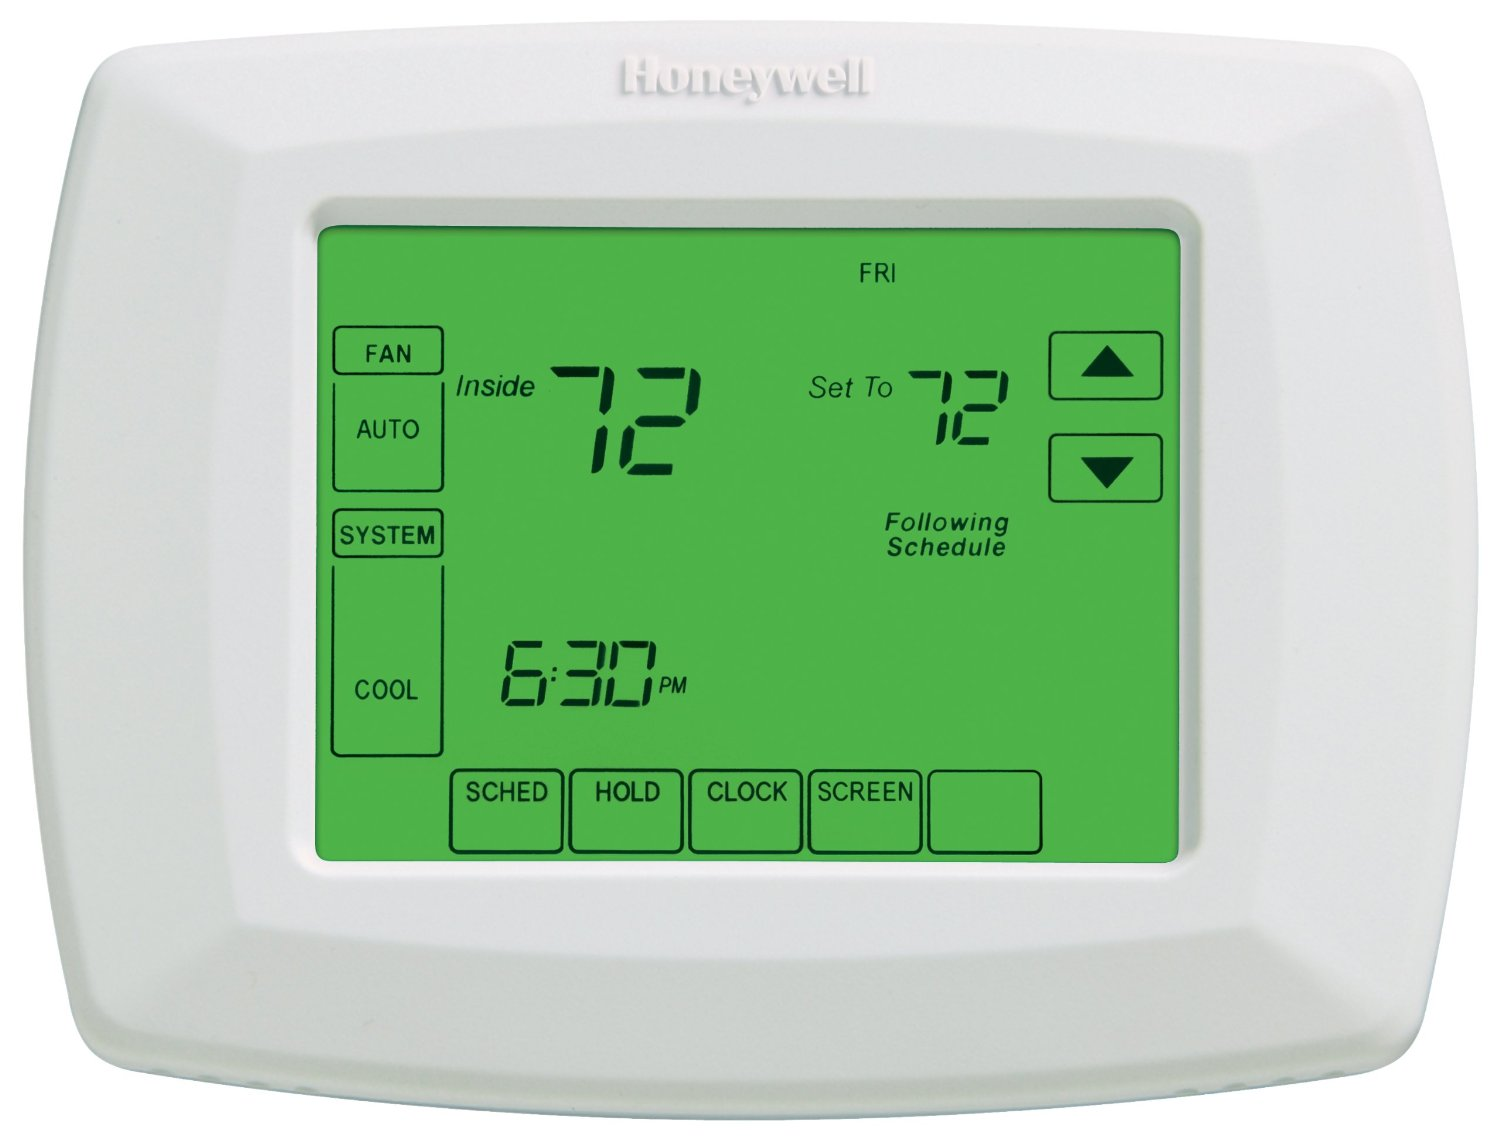 Honeywell 7 Day Touchscreen Programmable Thermostat mathew kevin, author at best digital thermostat reviews and buying honeywell utility pro thermostat wiring diagram at gsmx.co